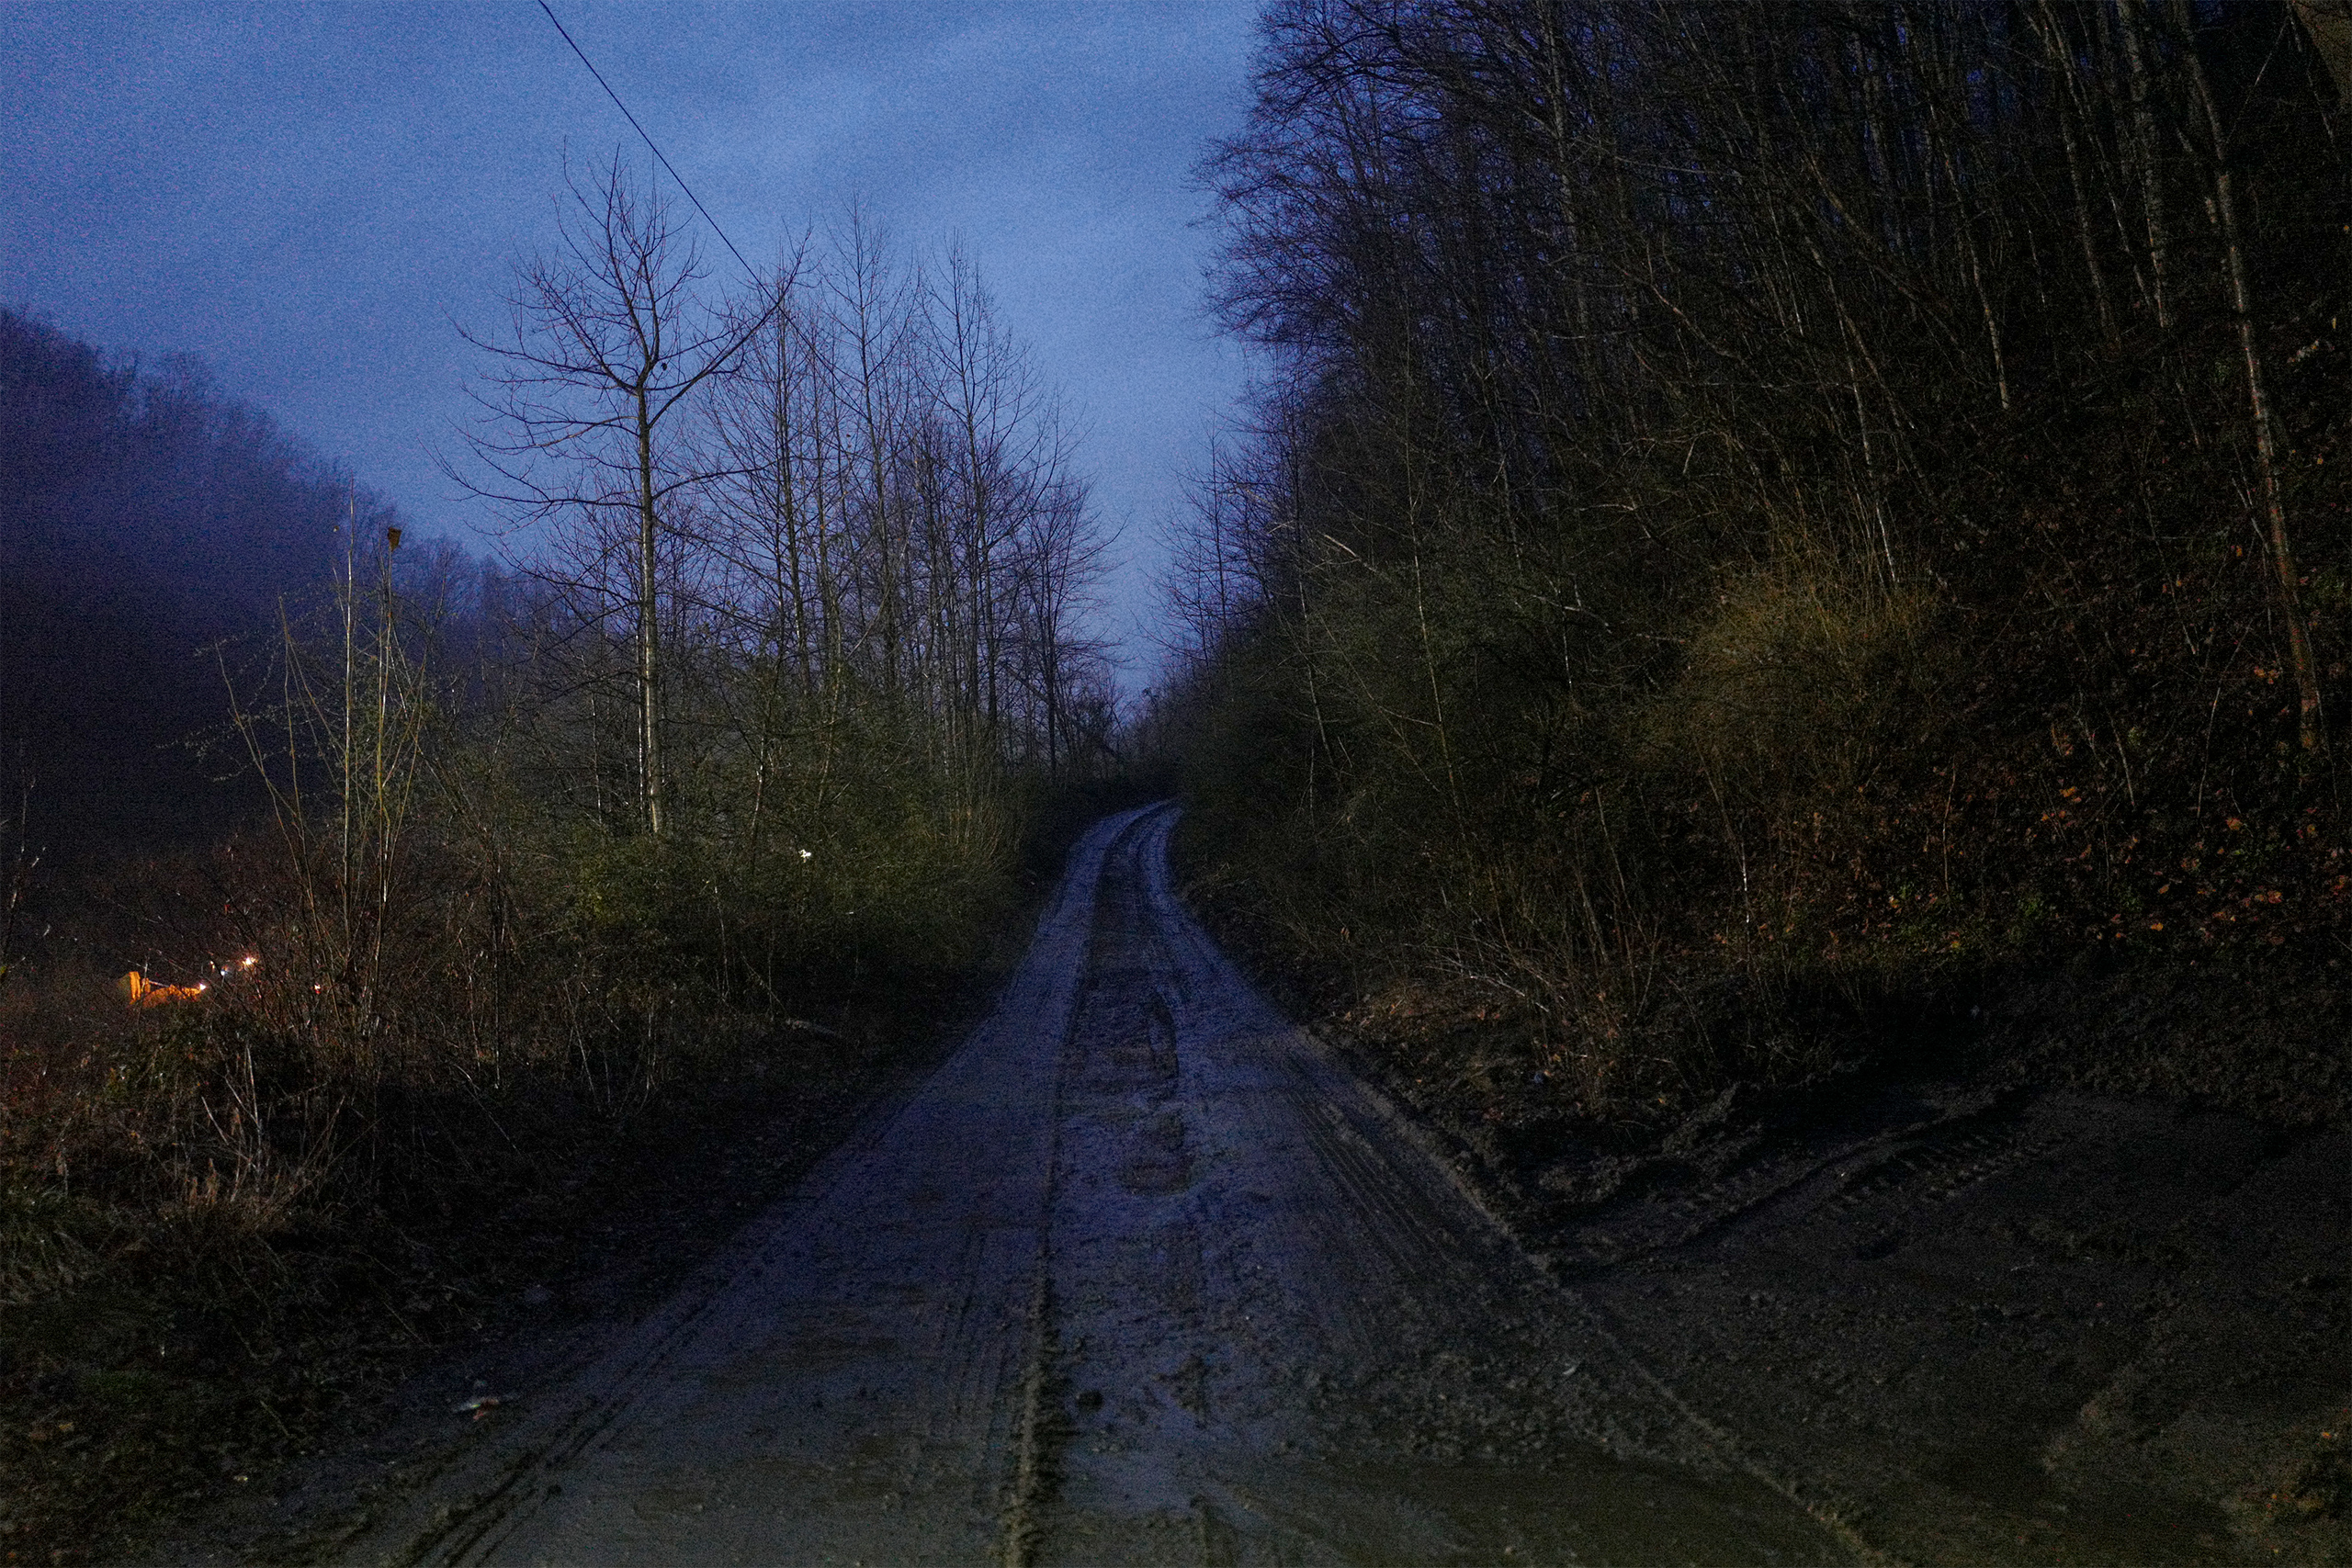 Outside a Southern Coal Corporation underground coal mine in Monroe County, W.Va., during a rainstorm on Mar. 17, 2017.